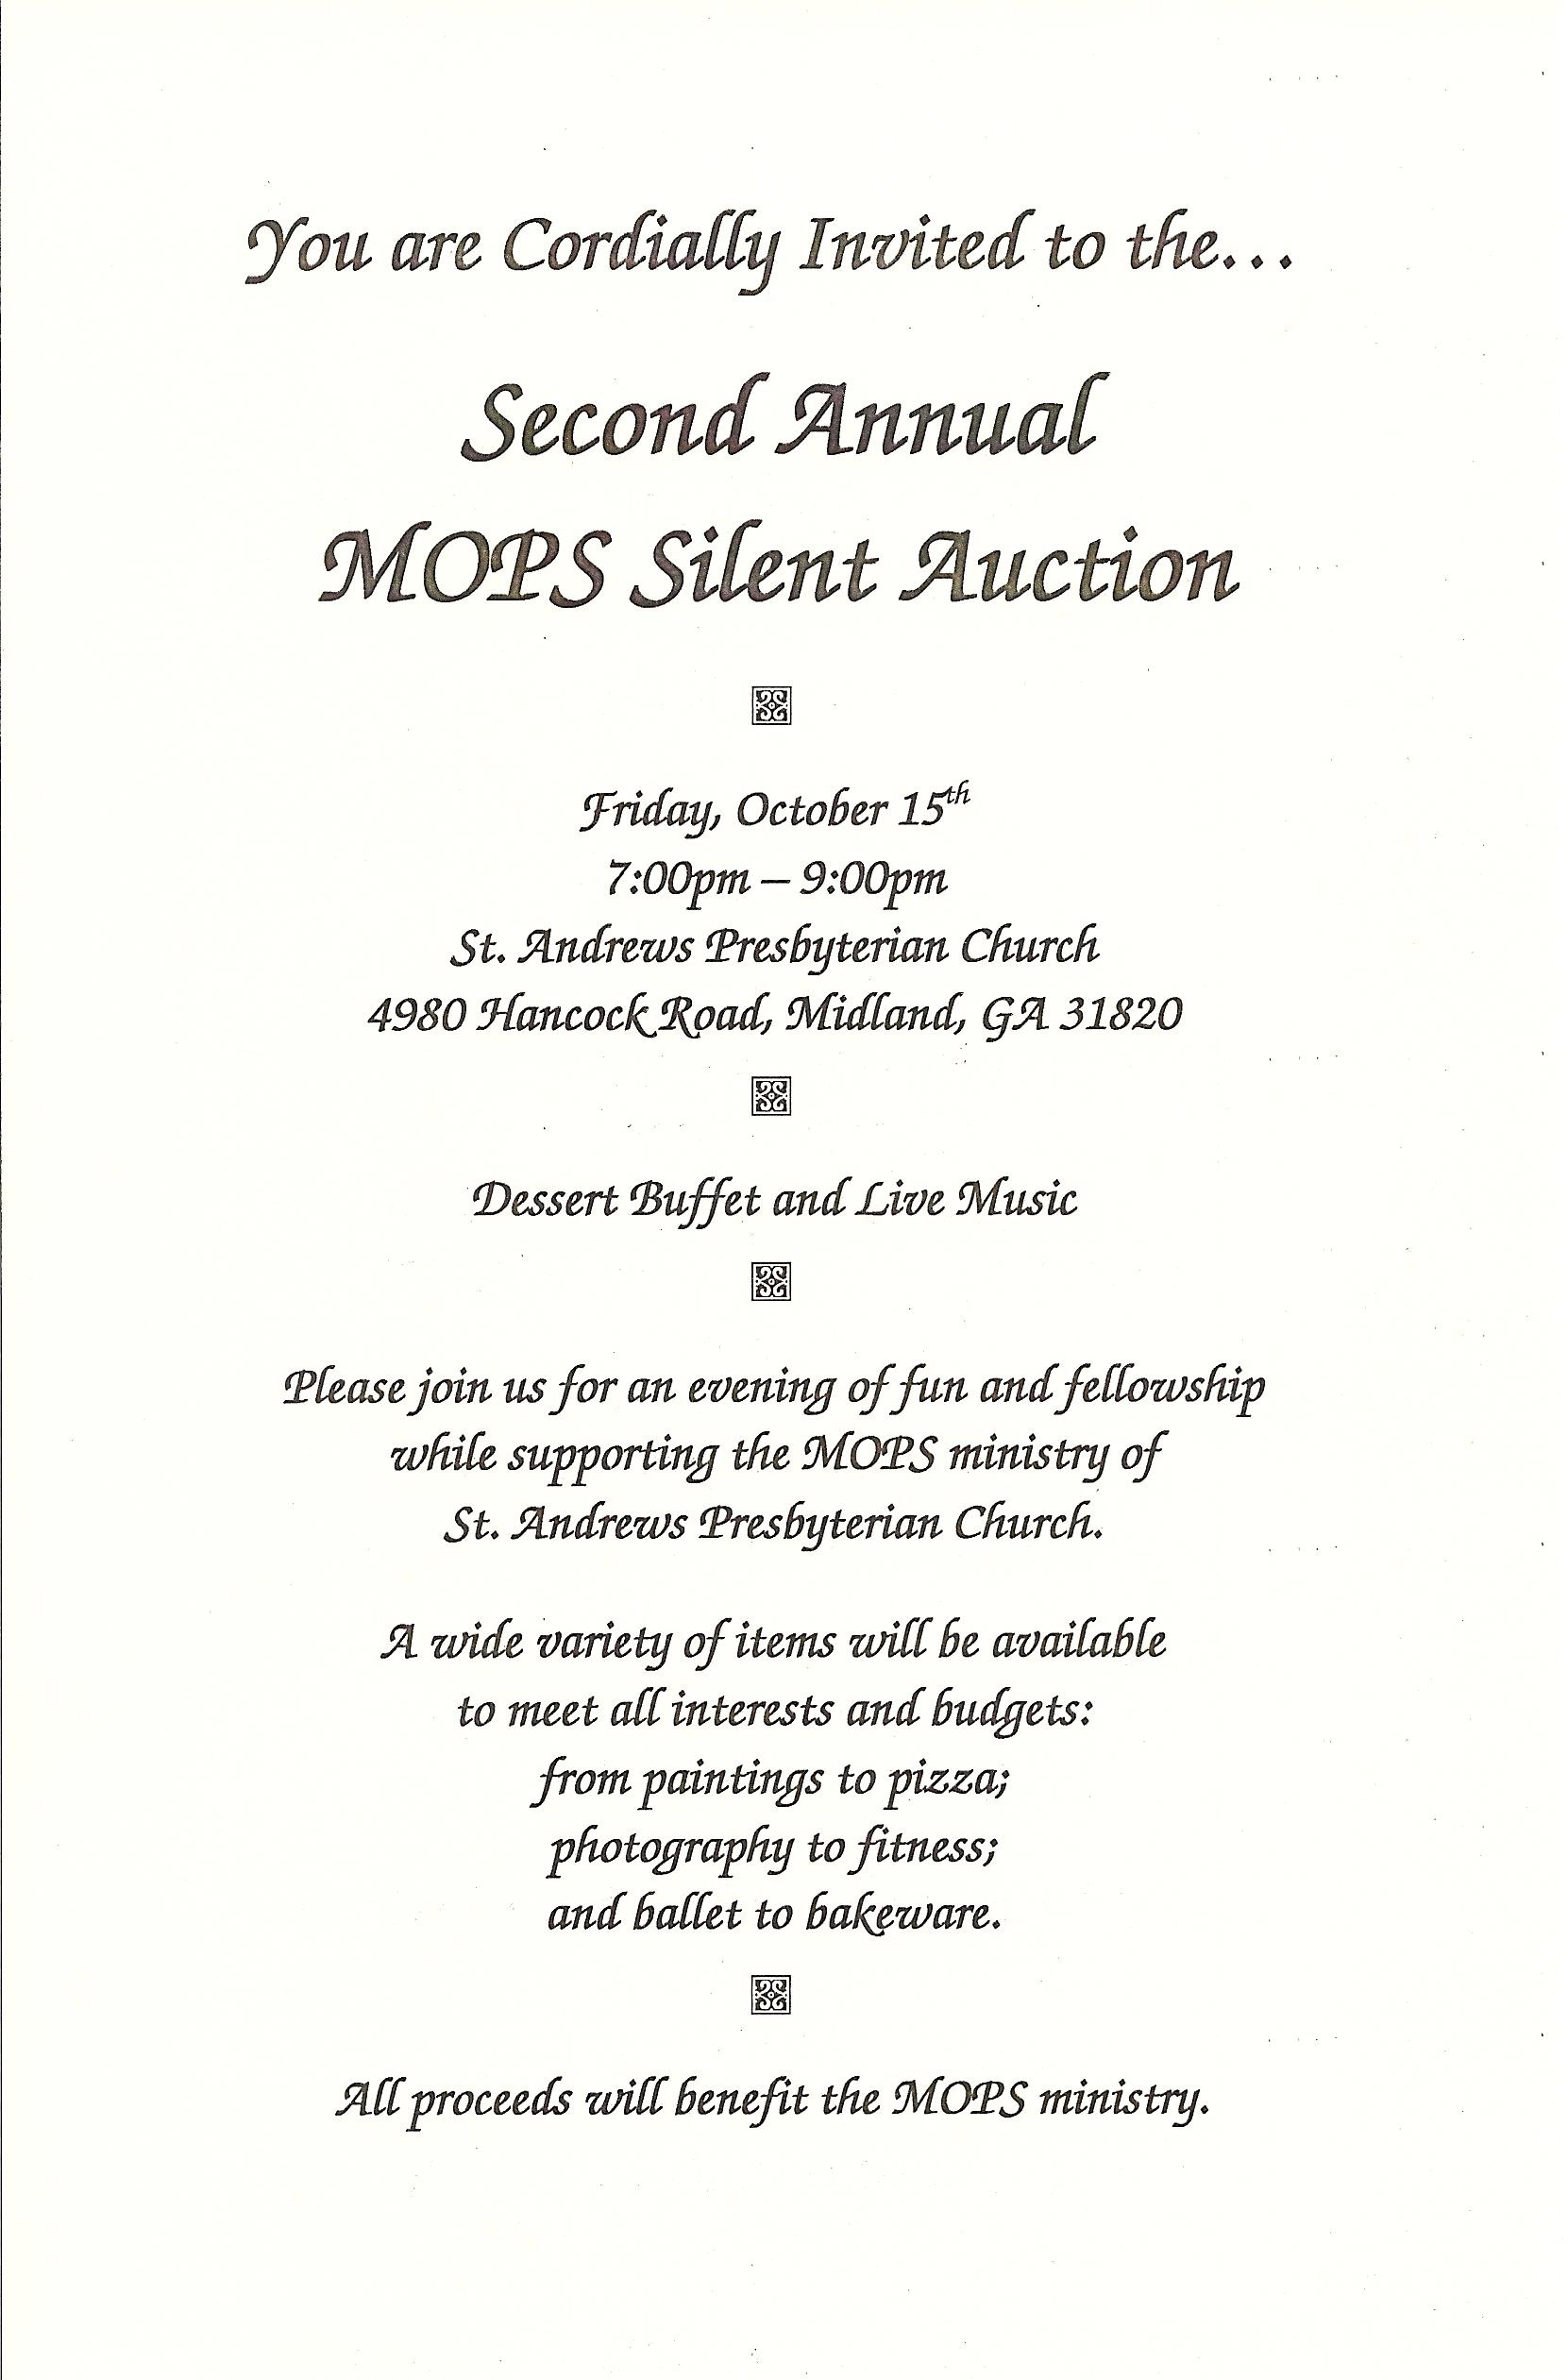 2nd Annual MOPS Silent Auction